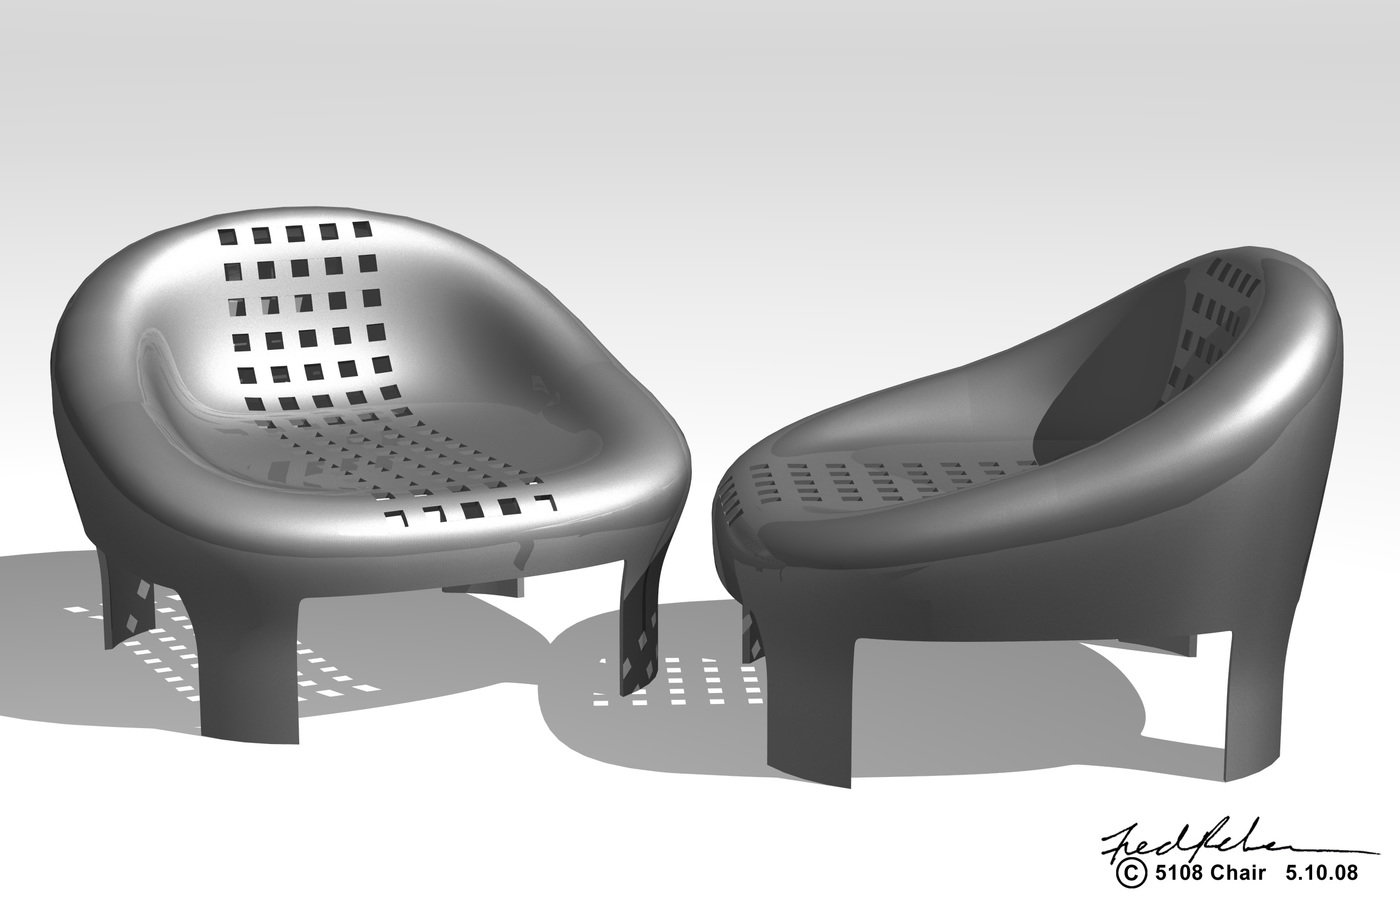 chair steel chair formed and welded together in two sections punched pattern applied to top section